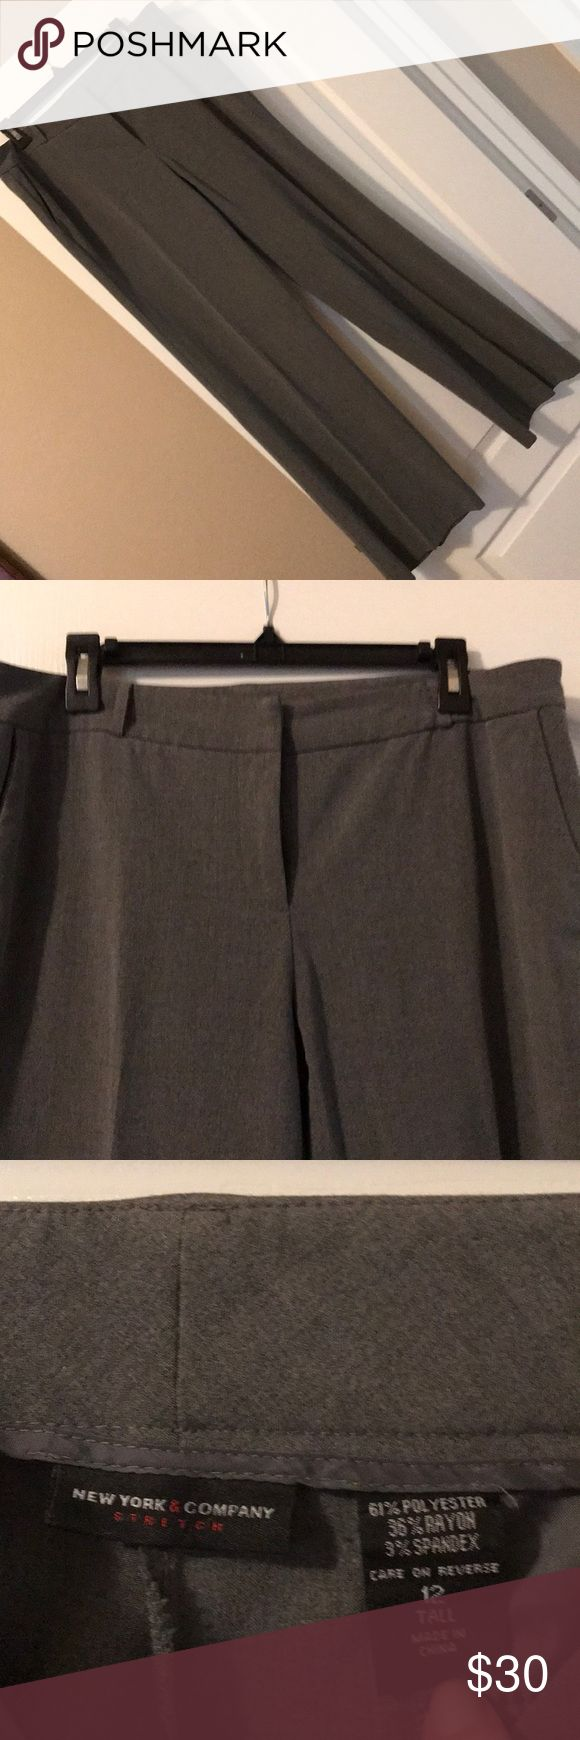 NY and Company grey dress pants NY and Company - Grey dress pants - great business attire.  Like new.  Pleated front, excellent condition.  These pants are super comfortable and go with everything.  They are perfect for those tall women.    I lost weight and am cleaning out my closet.    If you bundle I will offer more discounts. New York & Company Pants Trousers